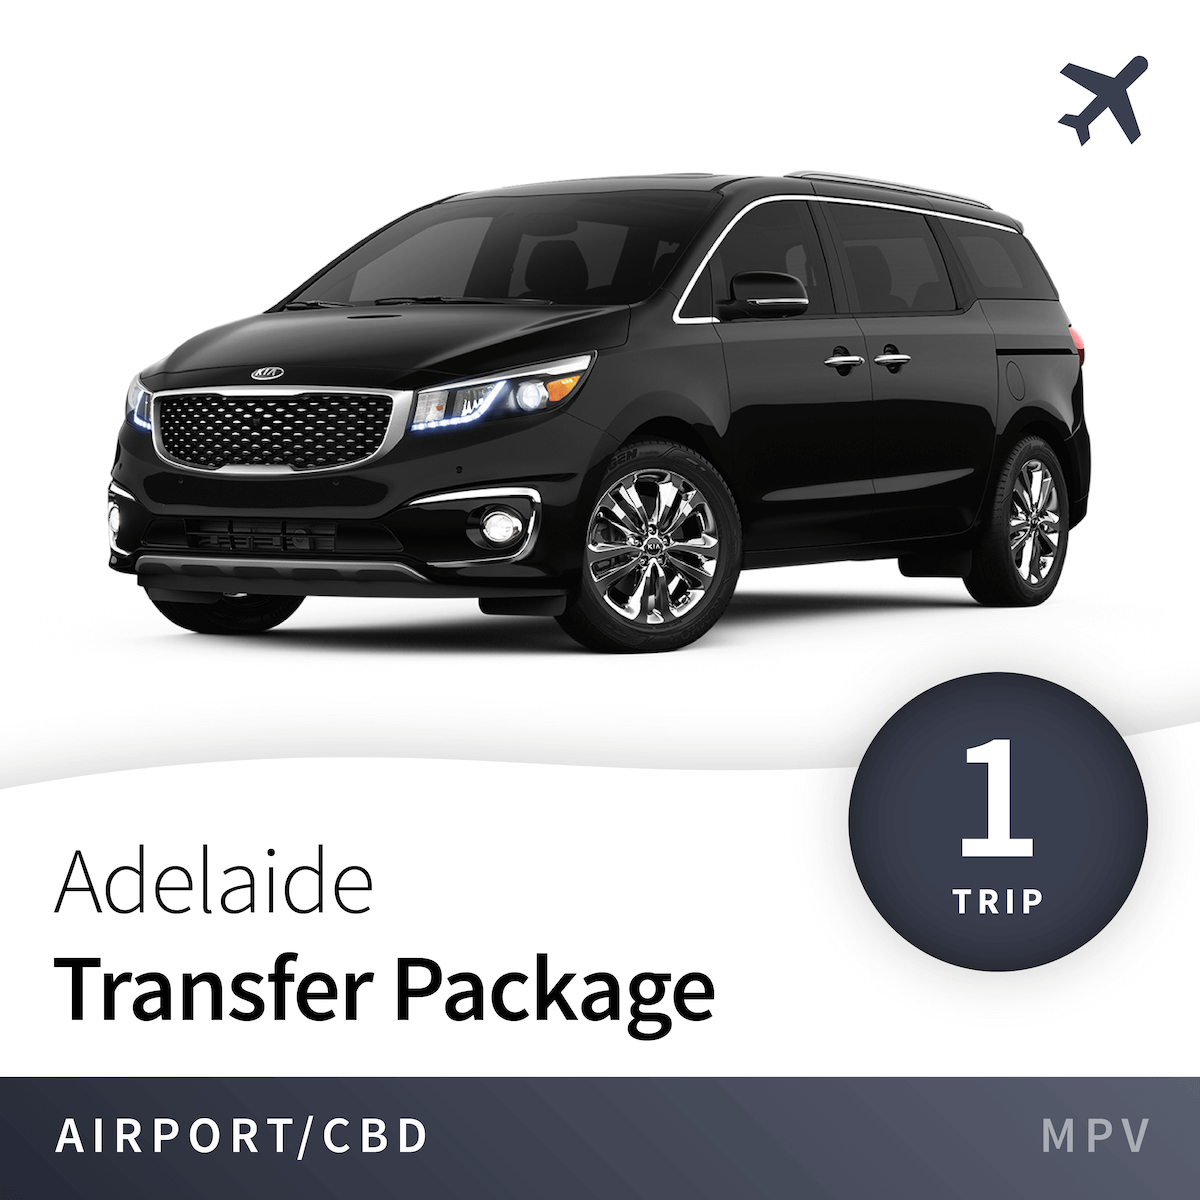 Adelaide Airport Transfer Package - MPV (1 Trip) 4